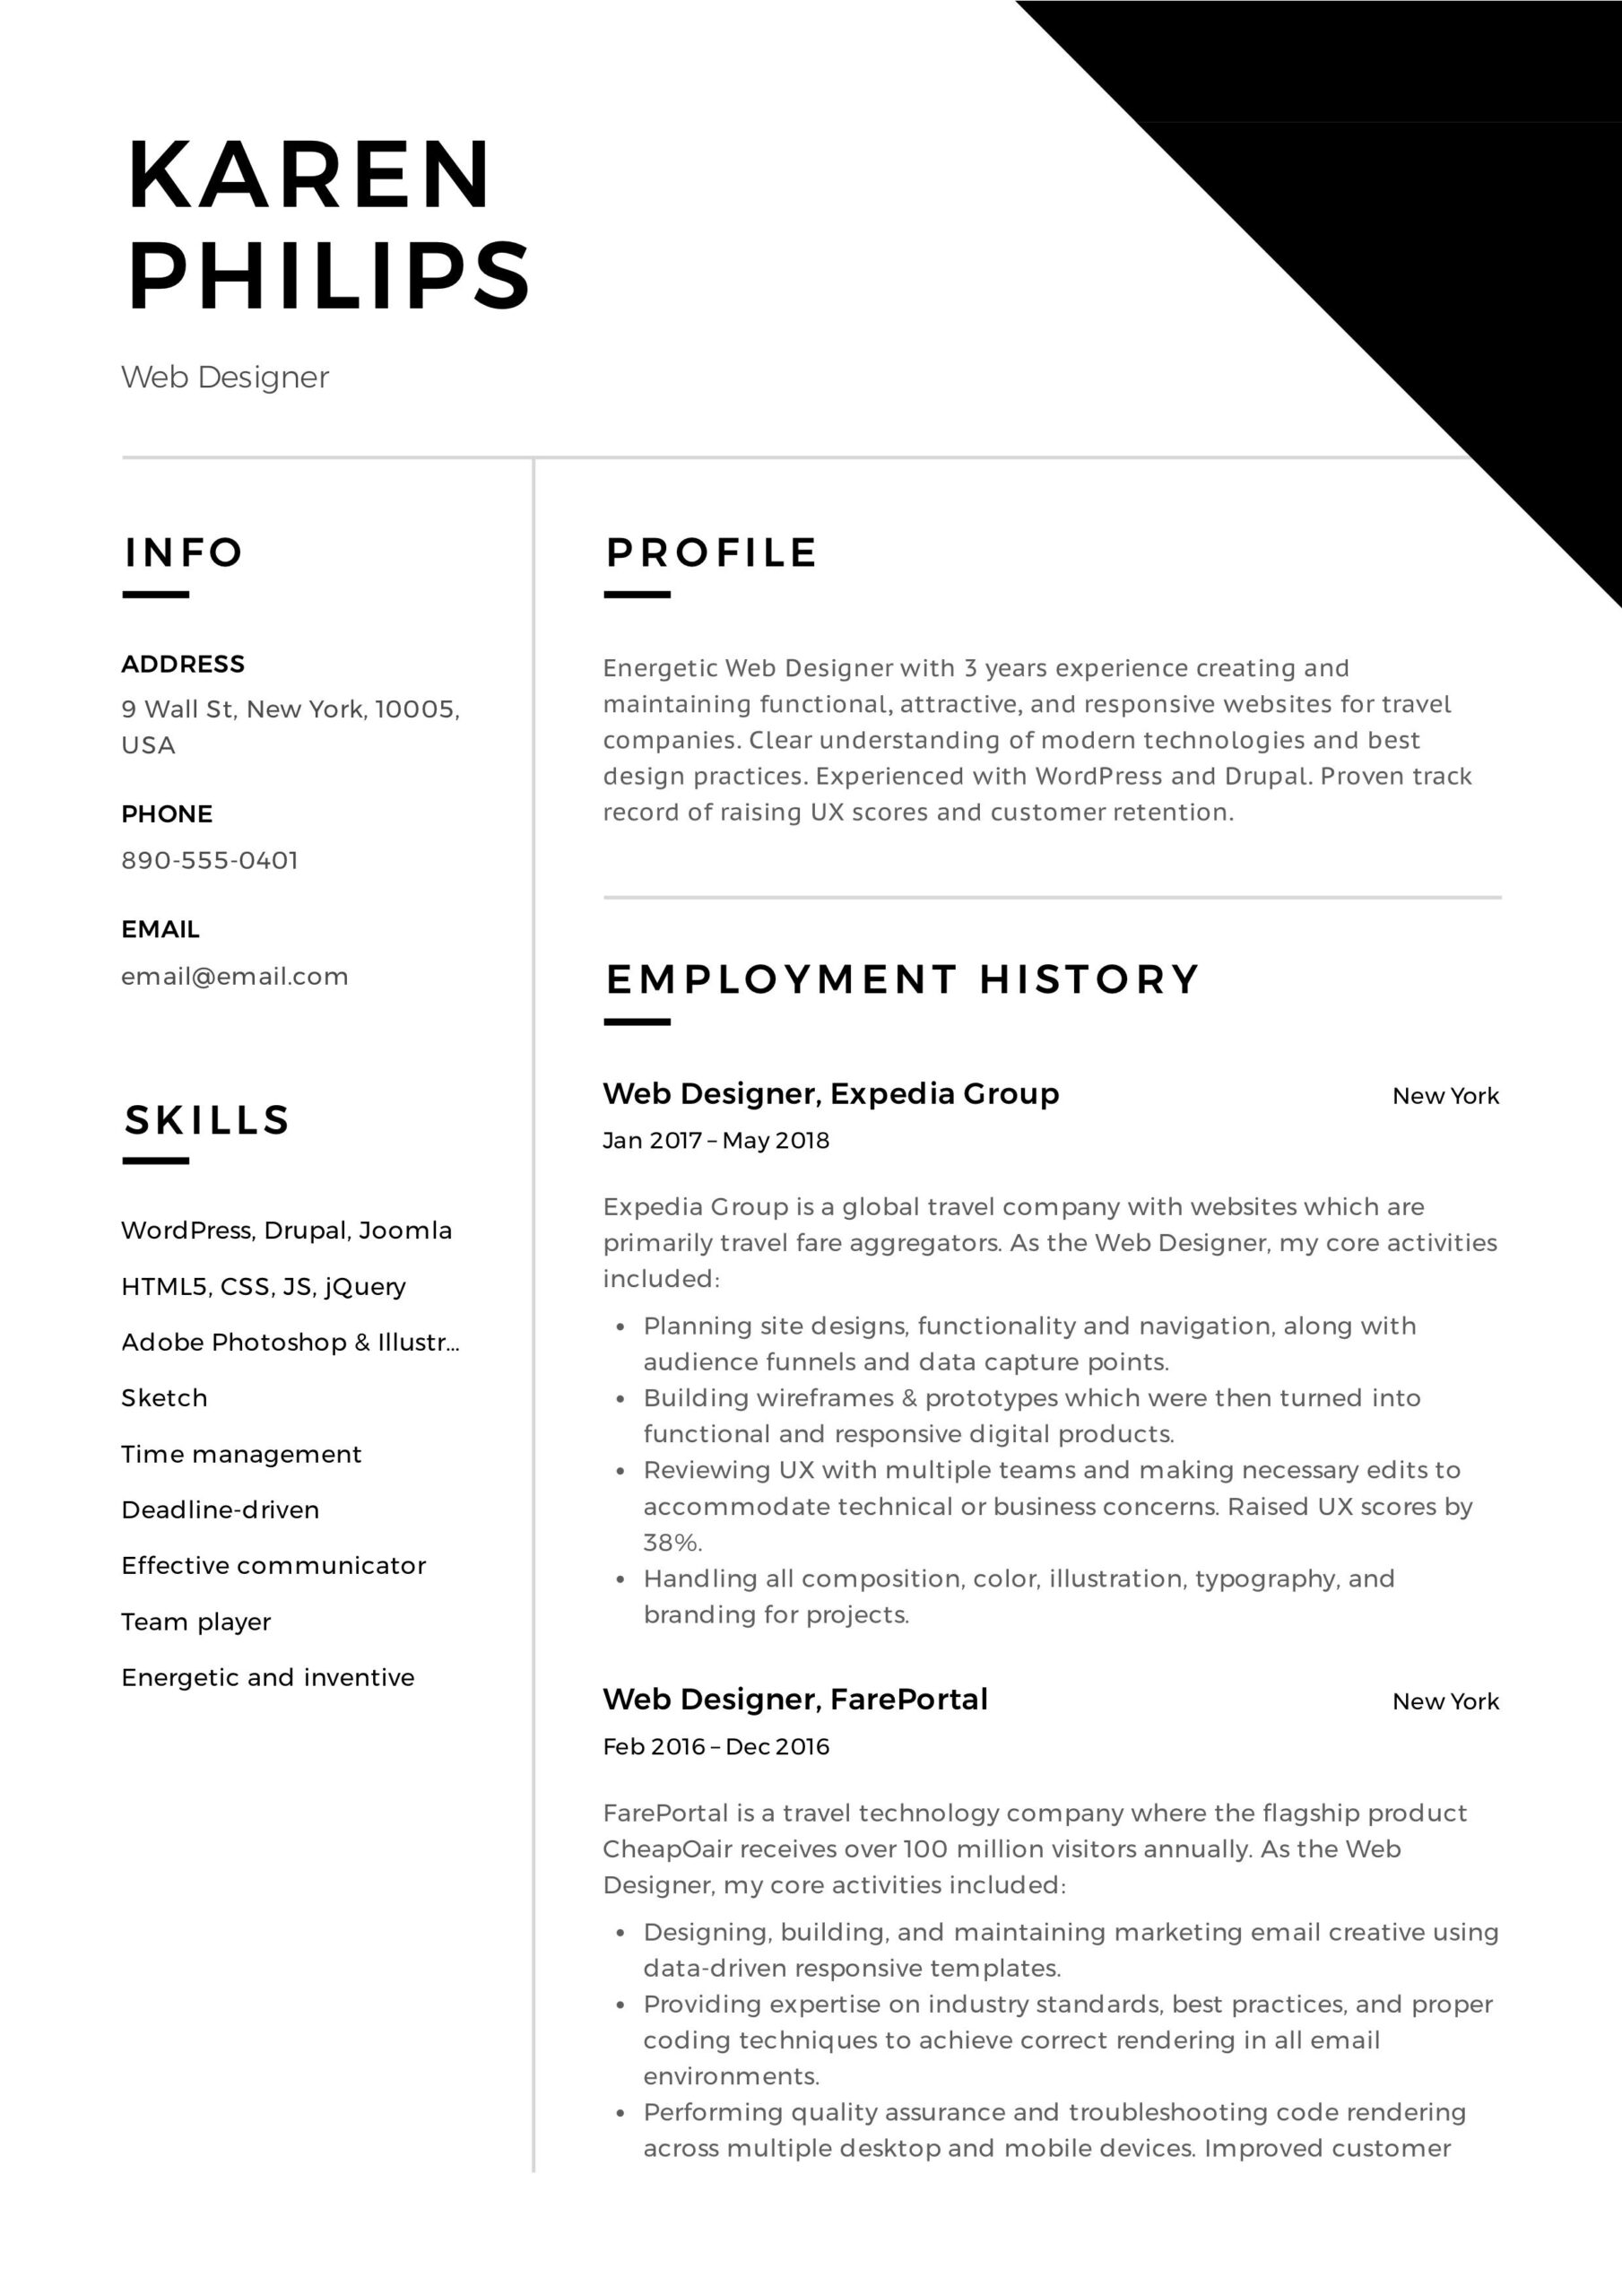 web designer resume example event planner professional examples format free office Resume Web Designer Resume Format Free Download